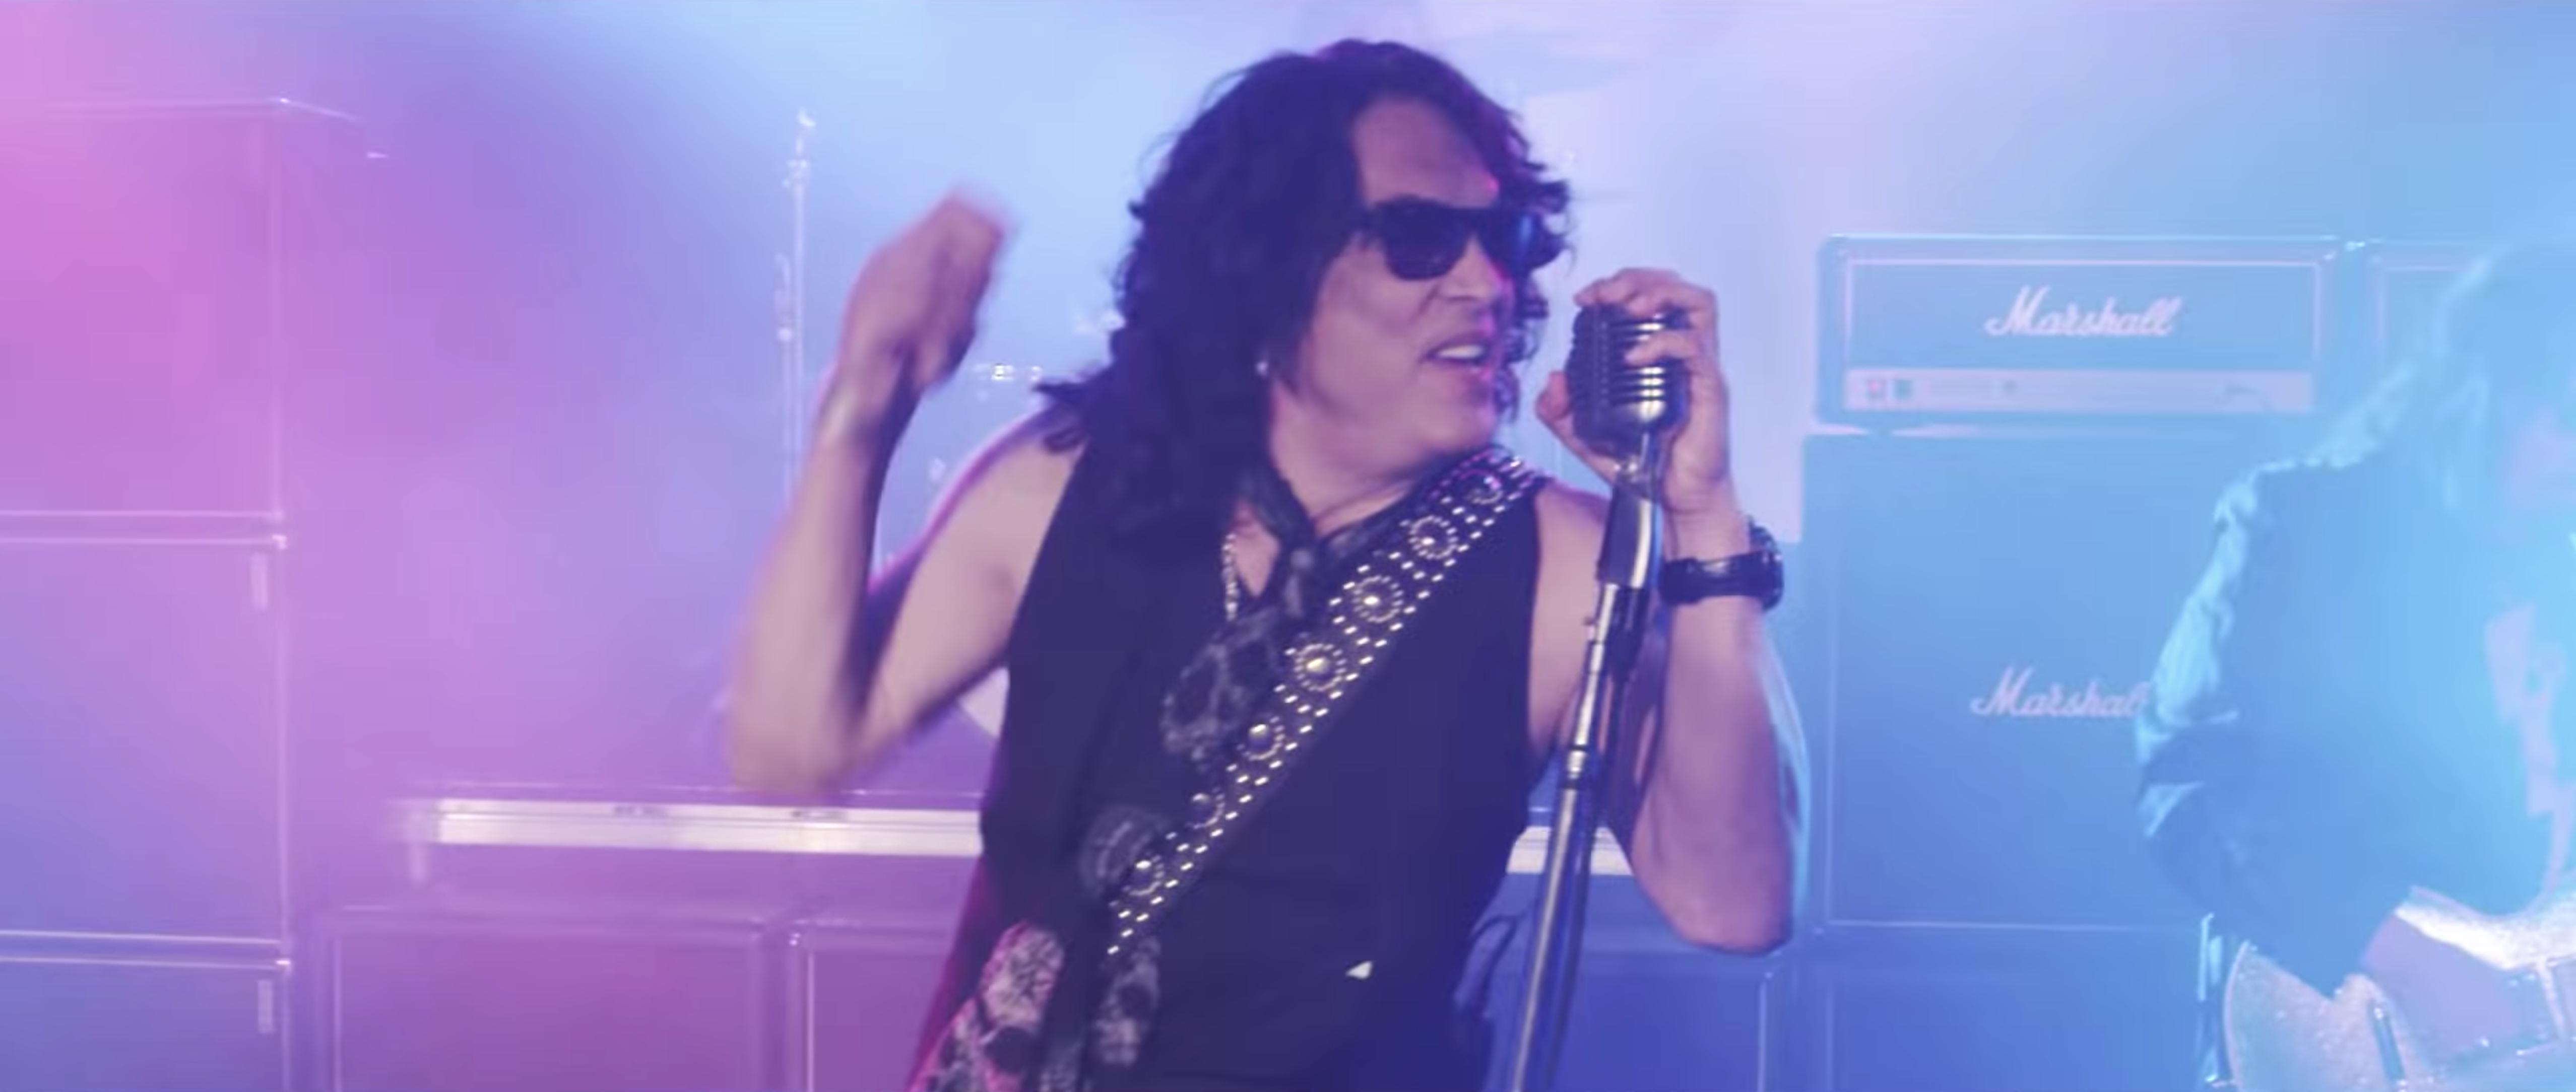 Paul Stanley in Ace Frehley feat. Paul Stanley: Fire and Water (2016)